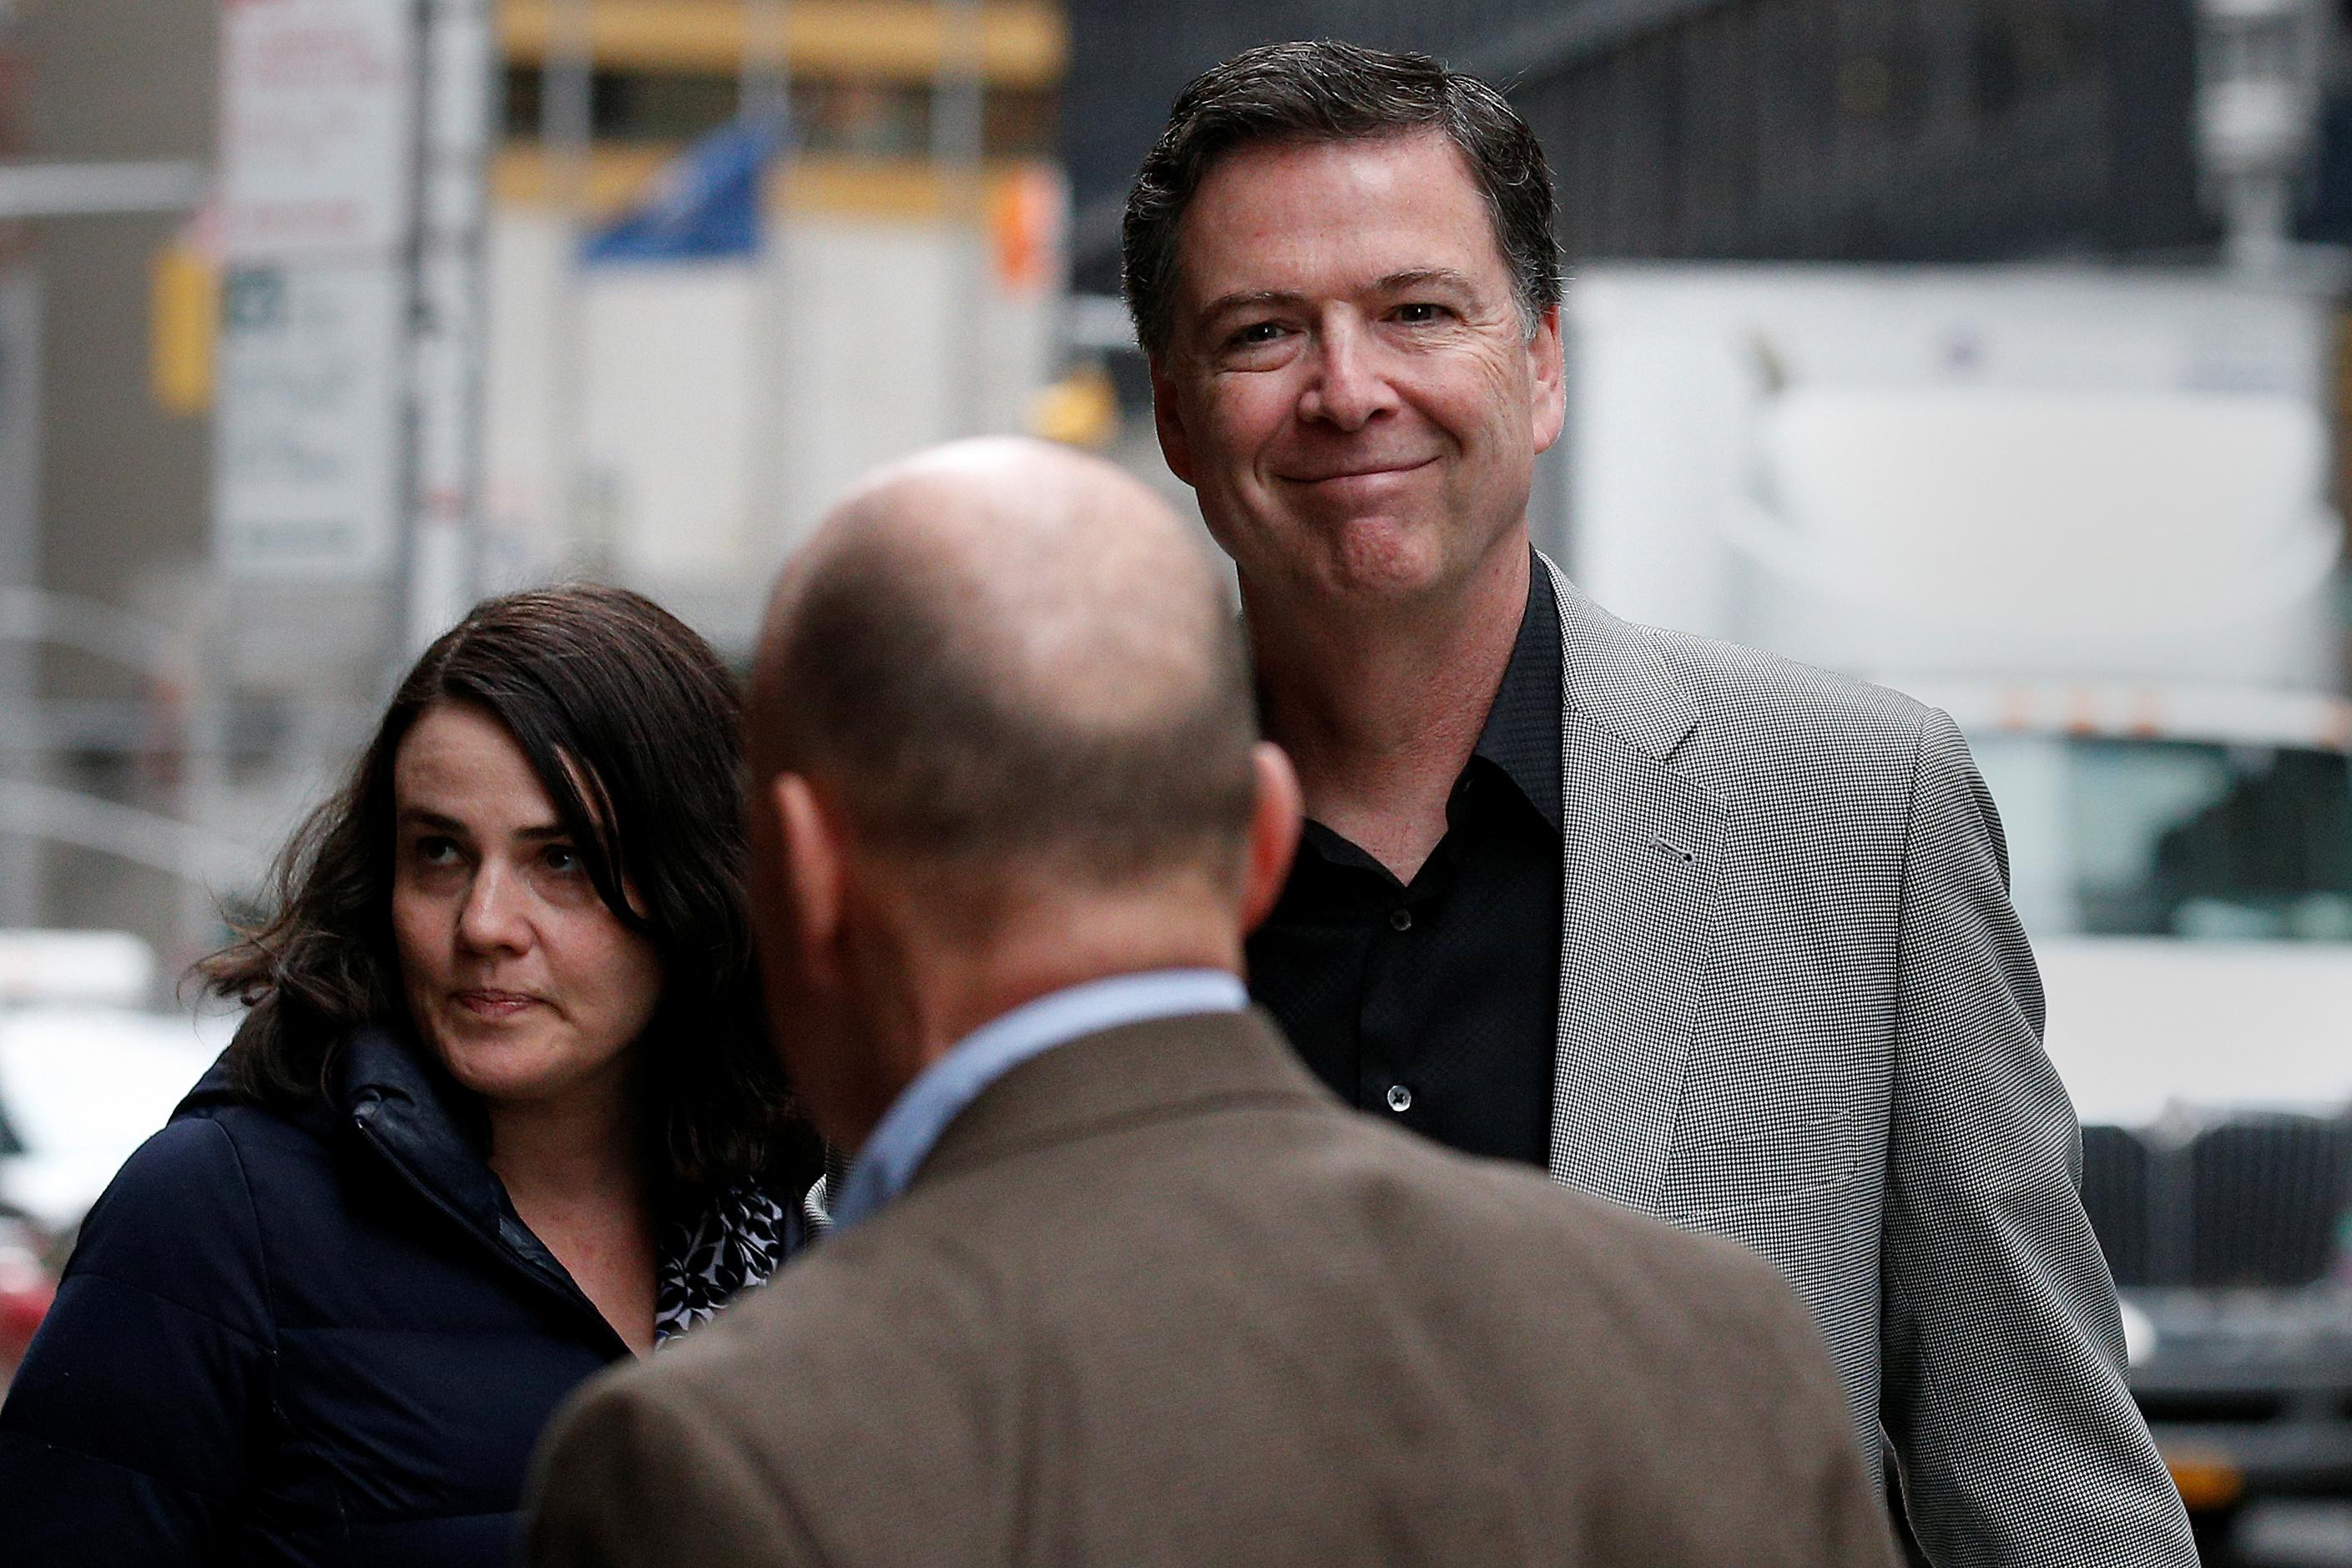 Former FBI Director James Comey arrives for a taping of 'The Late Show with Stephen Colbert' in New York City, April 17, 2018. Brendan McDermid